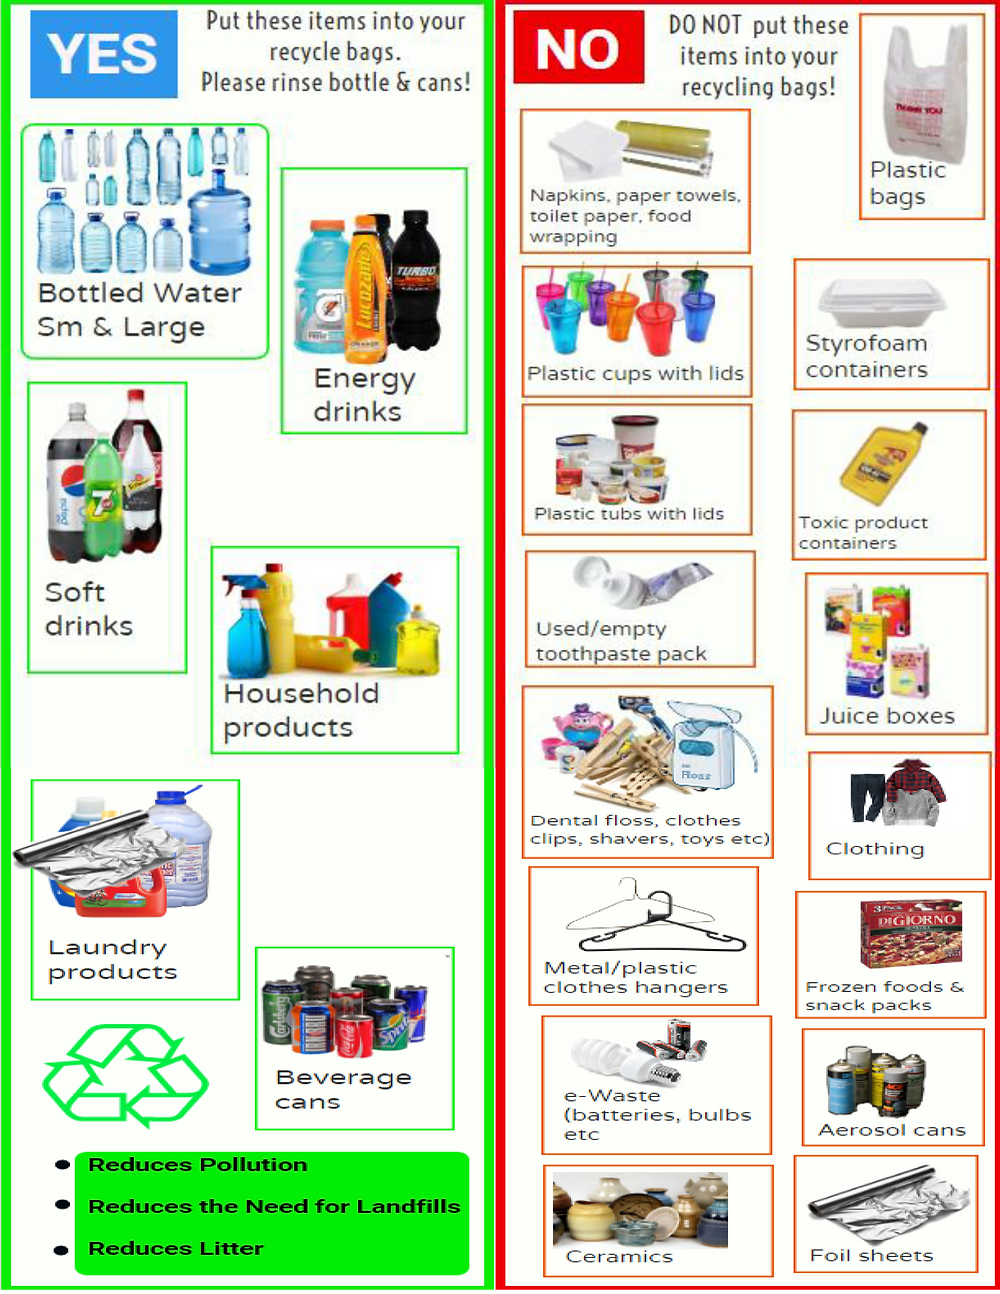 Items to recycle at your home